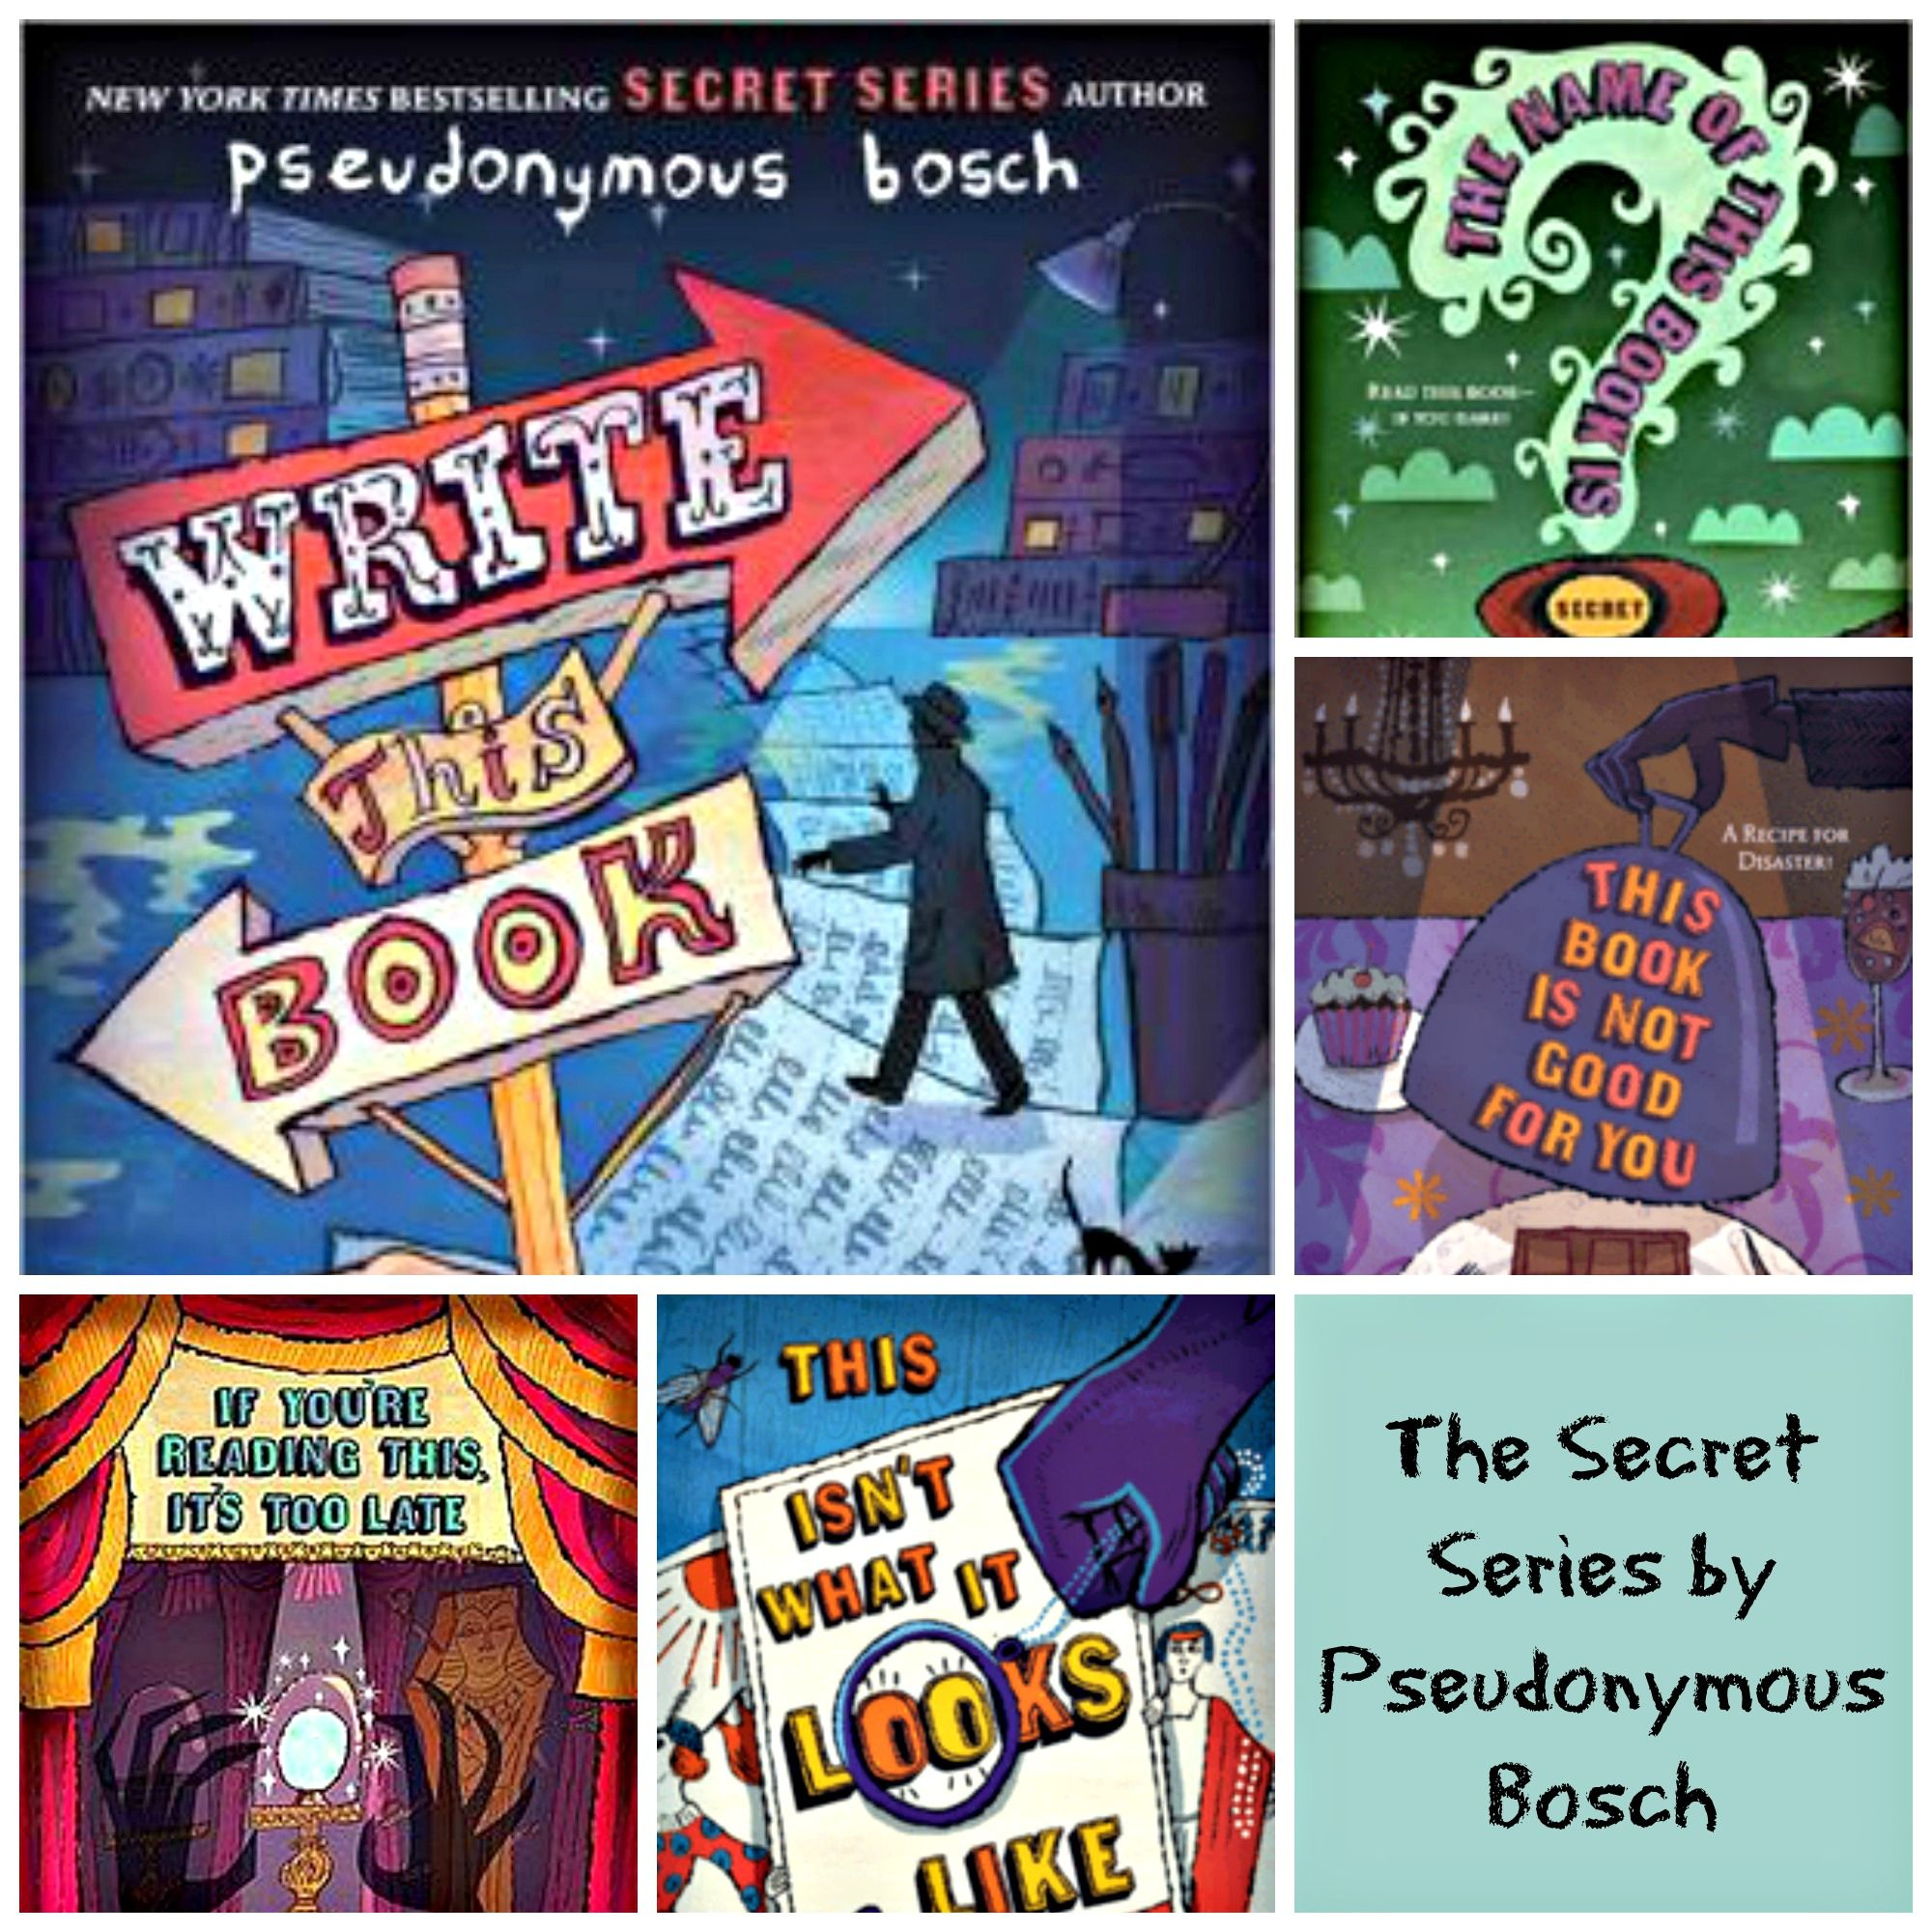 The Secret Series By Pseudonymous Bosch A Great Funny Series For